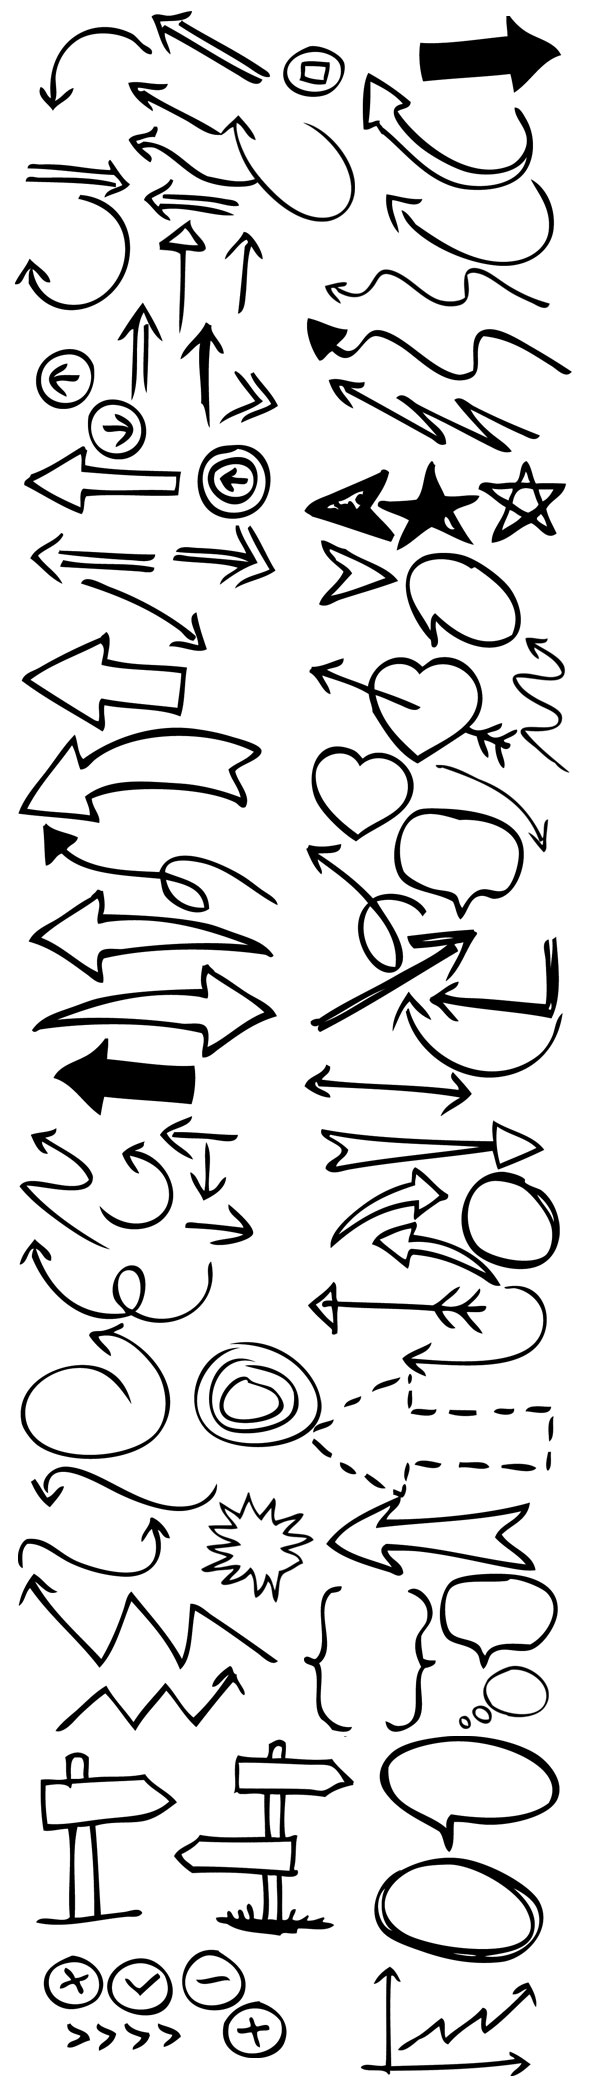 http://www.graphicstoll.com/2013/05/90-hand-drawn-arrow-and-symbol_3.html